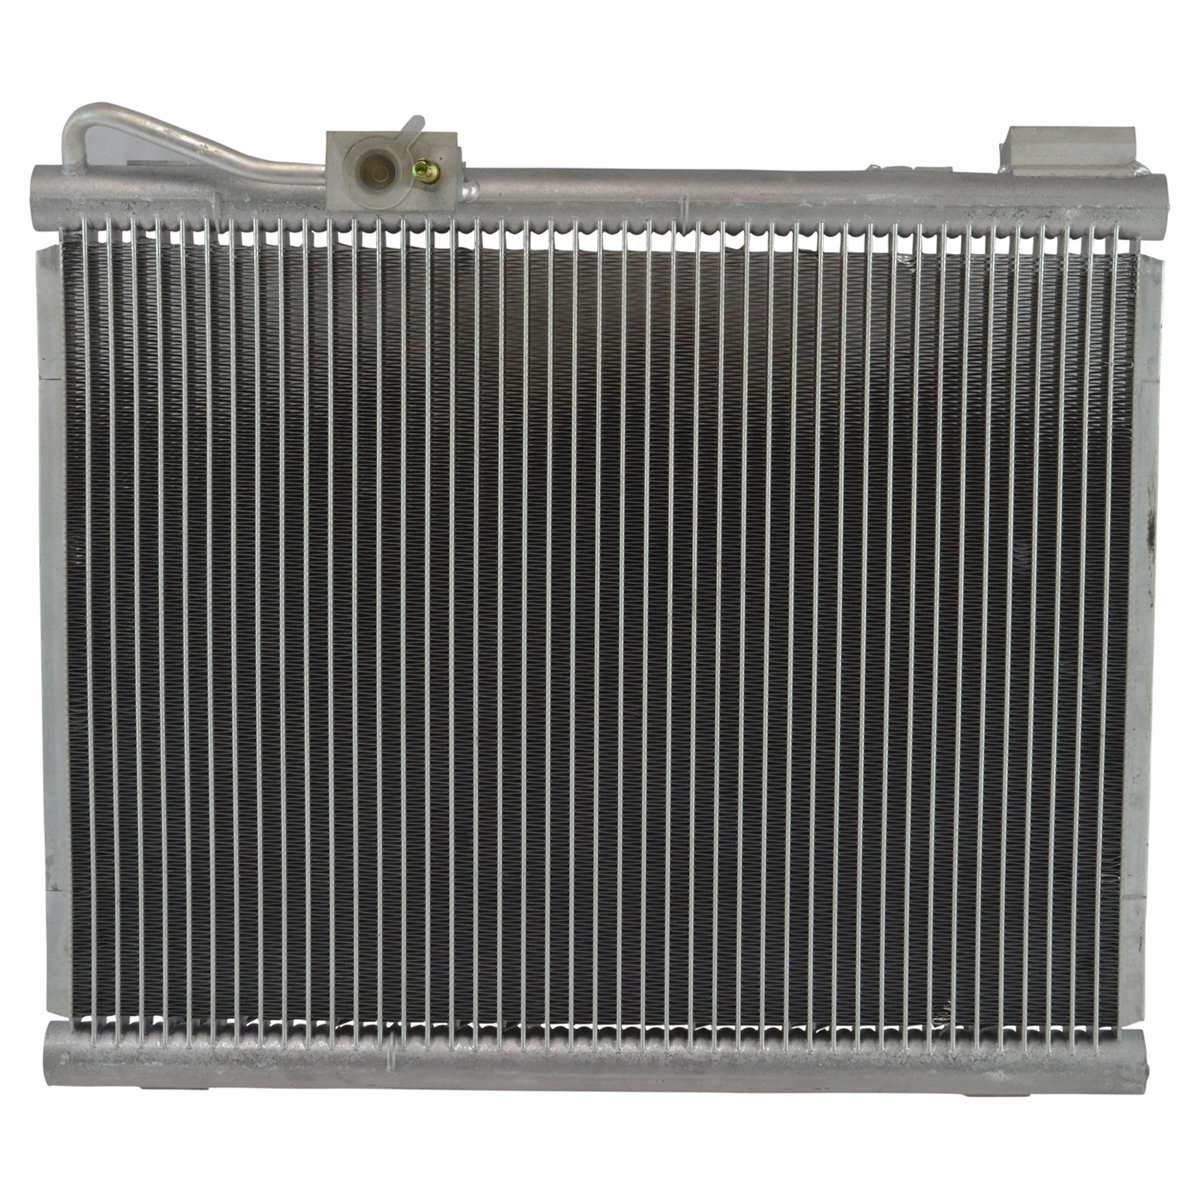 Auto Parts and Vehicles Car & Truck Condensers & Evaporators AC Condenser A/C Air Conditioning for Dodge Ram 2500 3500 Truck Pickup New